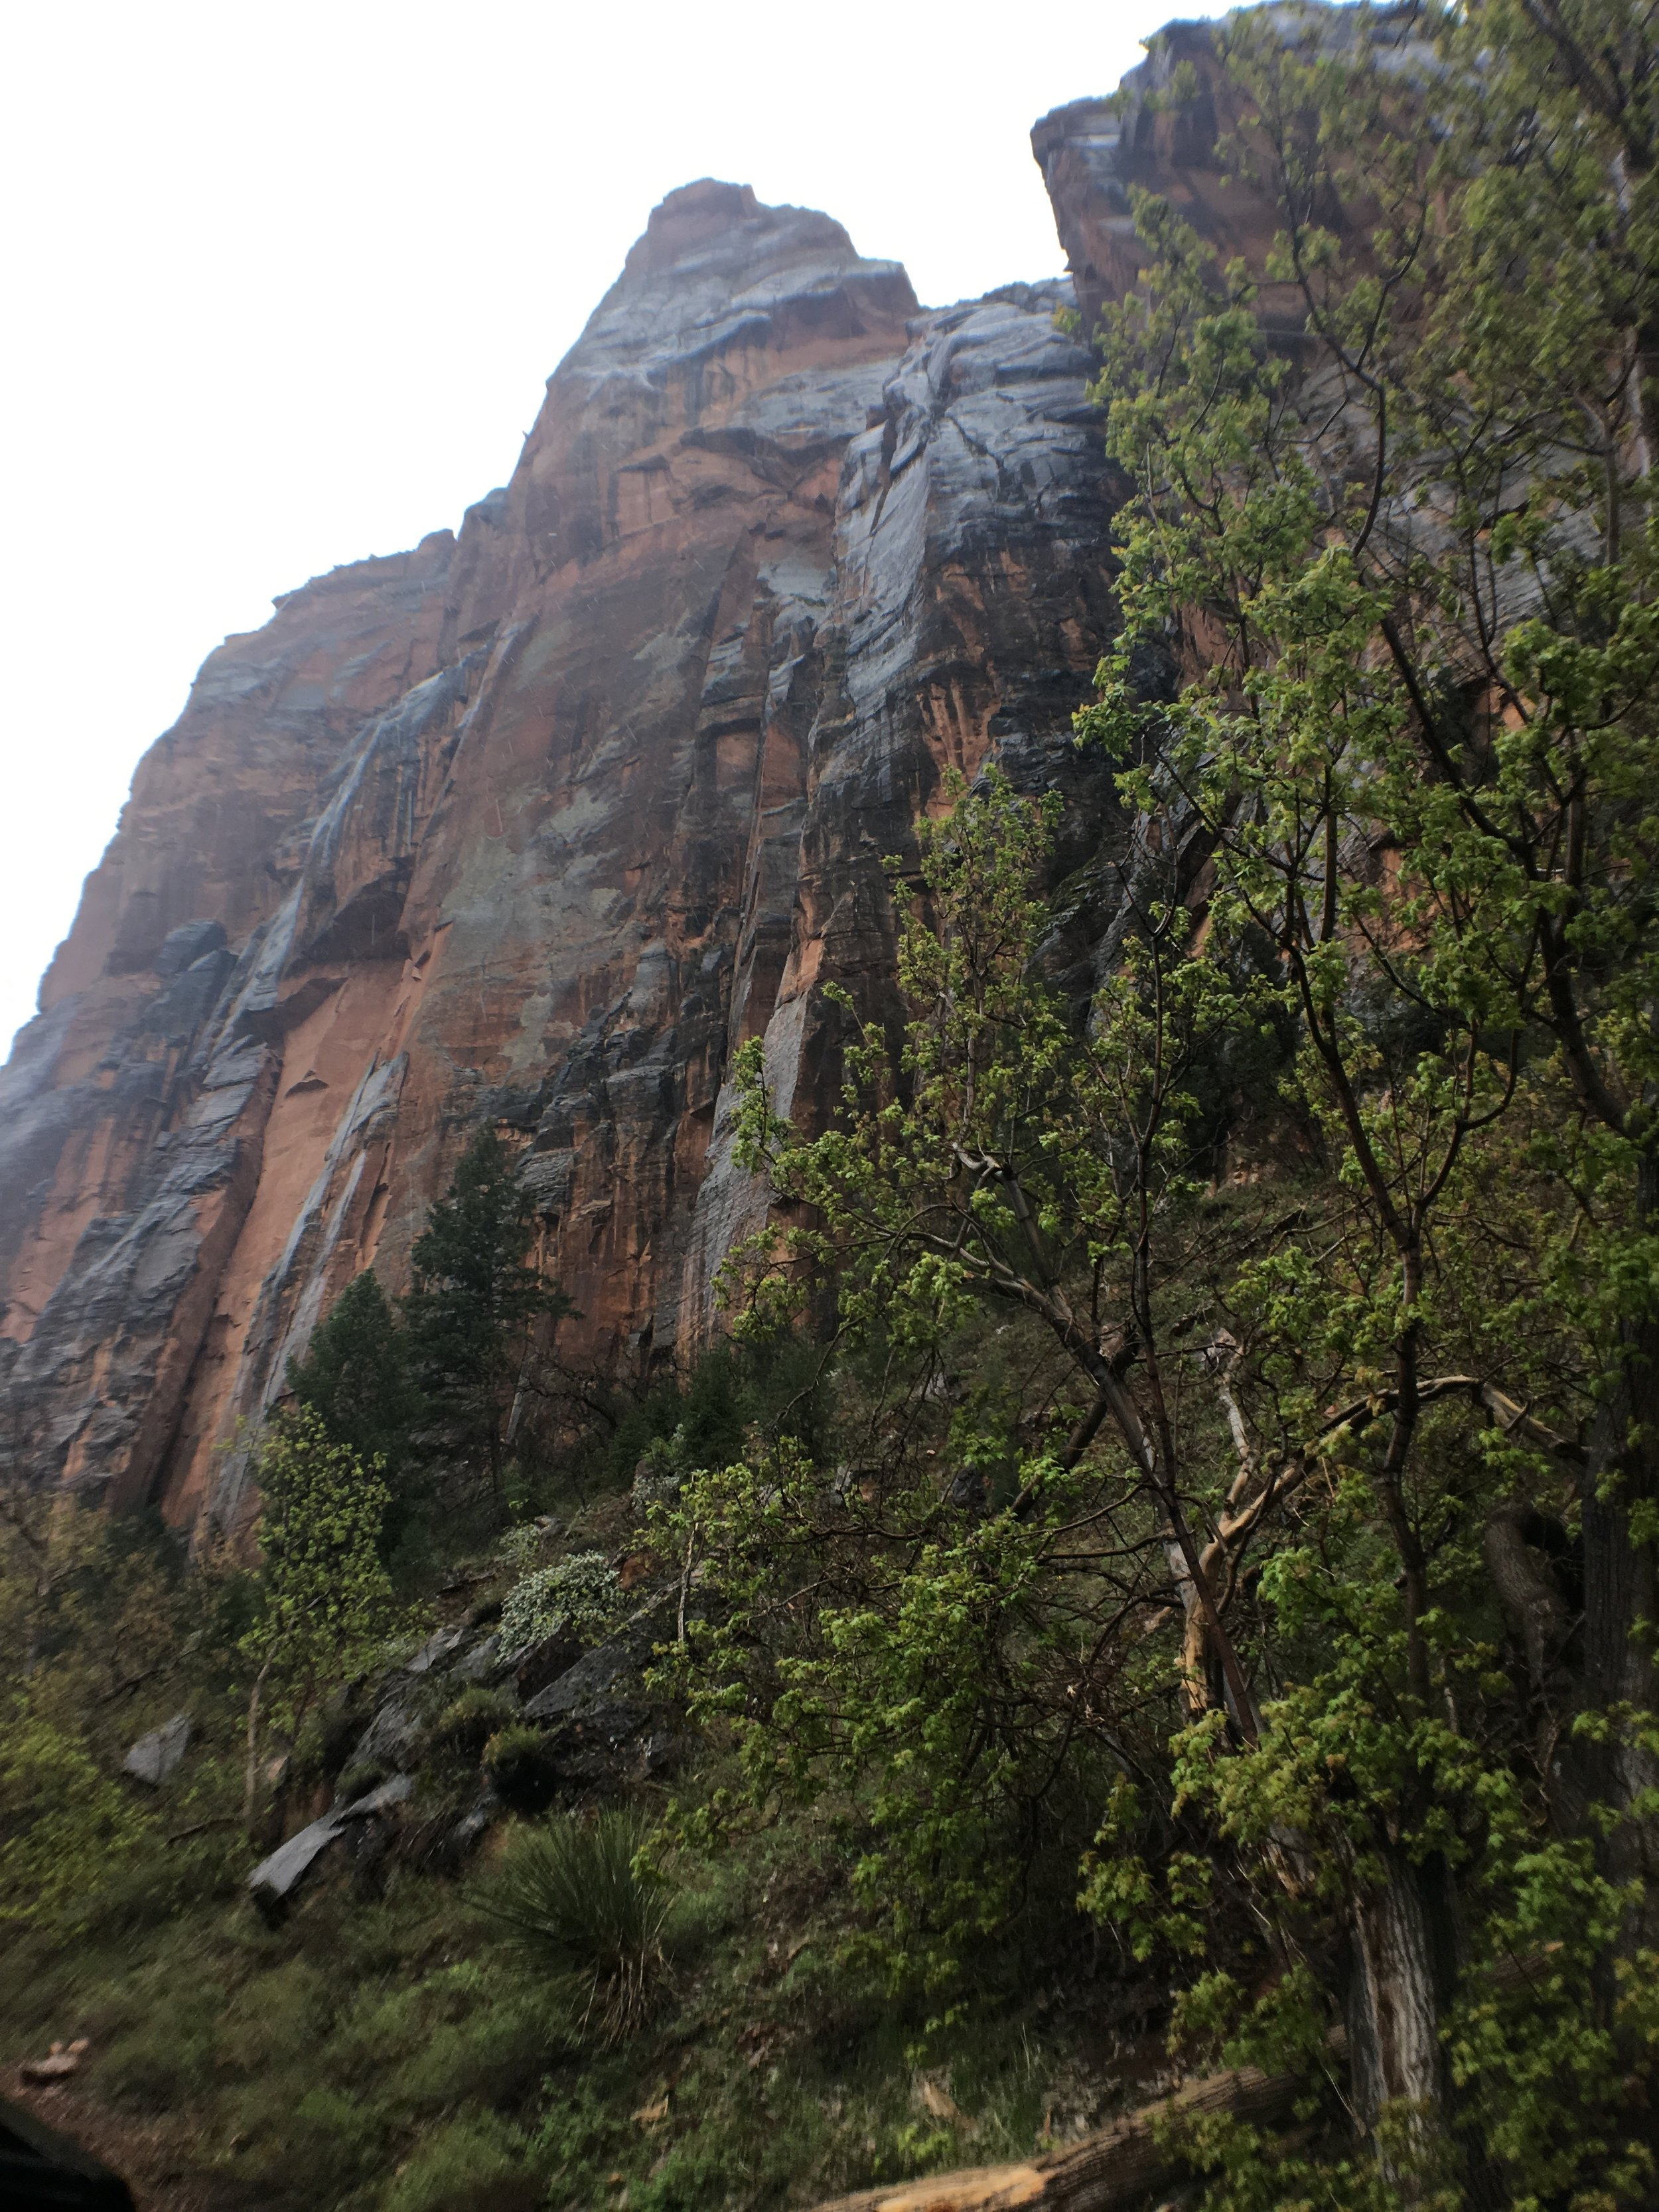 Such tall rocks at Zion